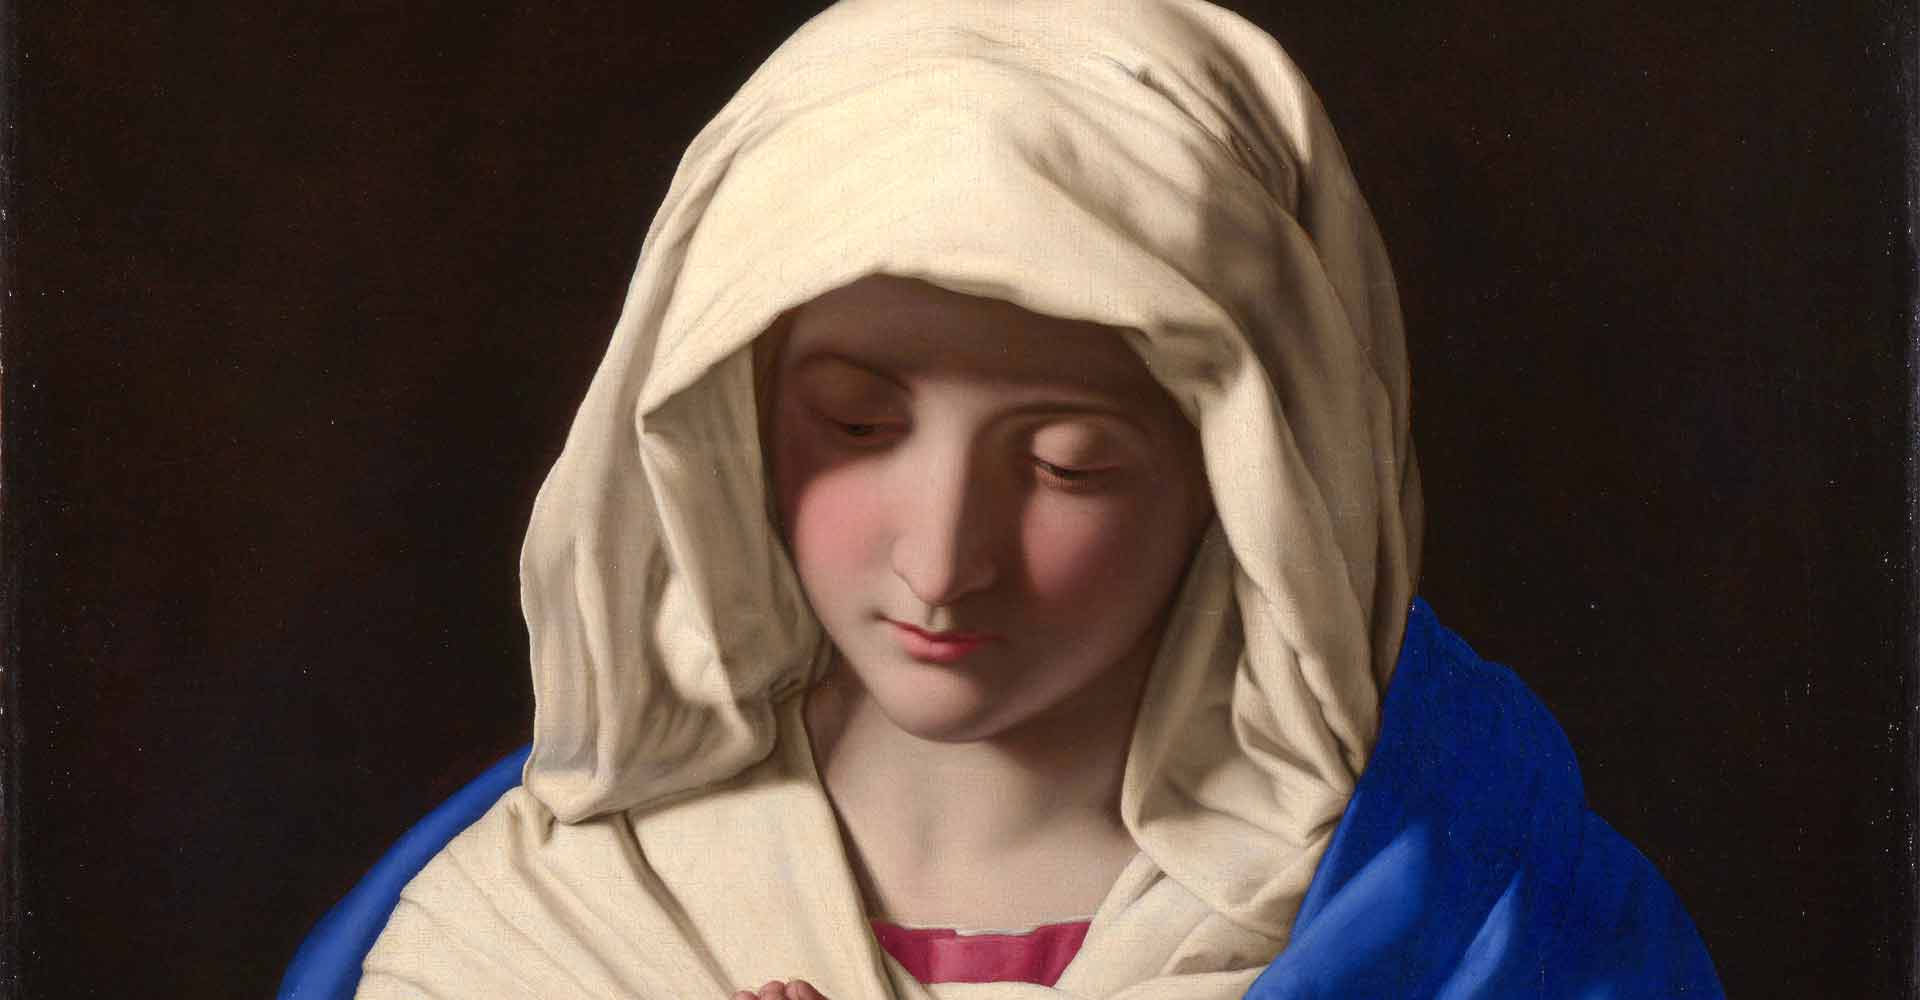 Virgin Mary, Mother of God